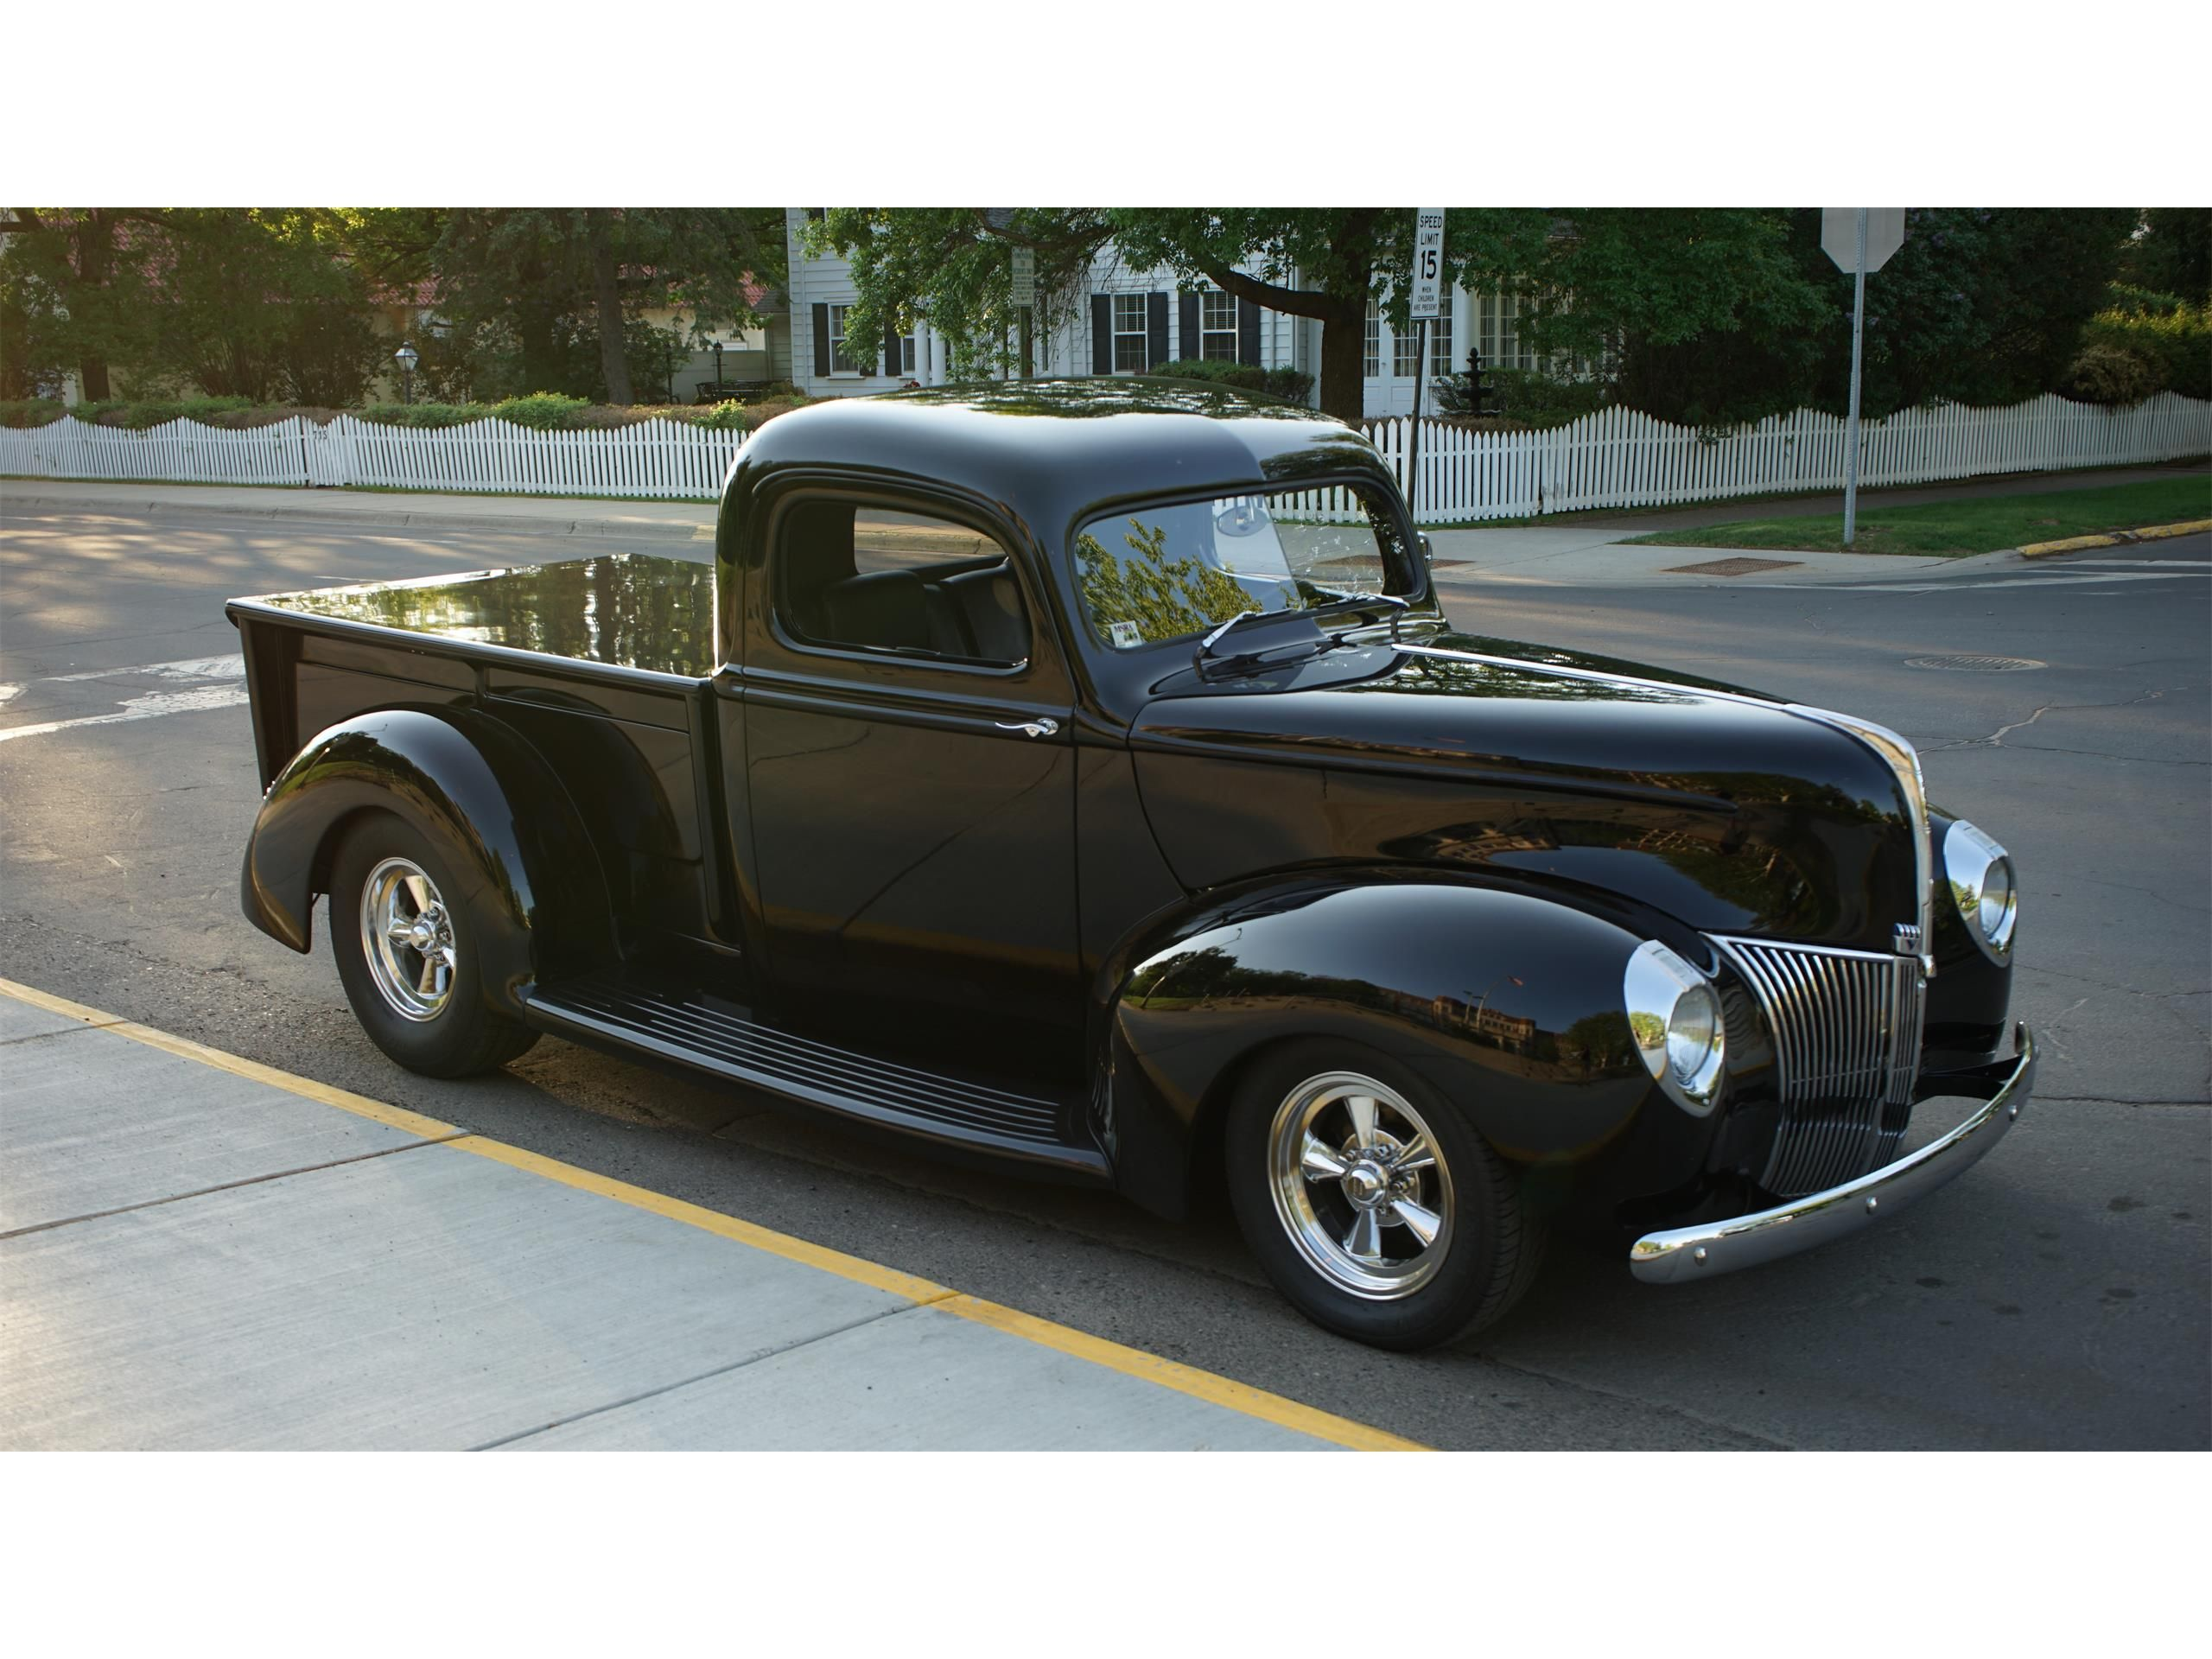 Large Photo Of 40 Pickup Nt73 Con Imagenes Autos Y Motos